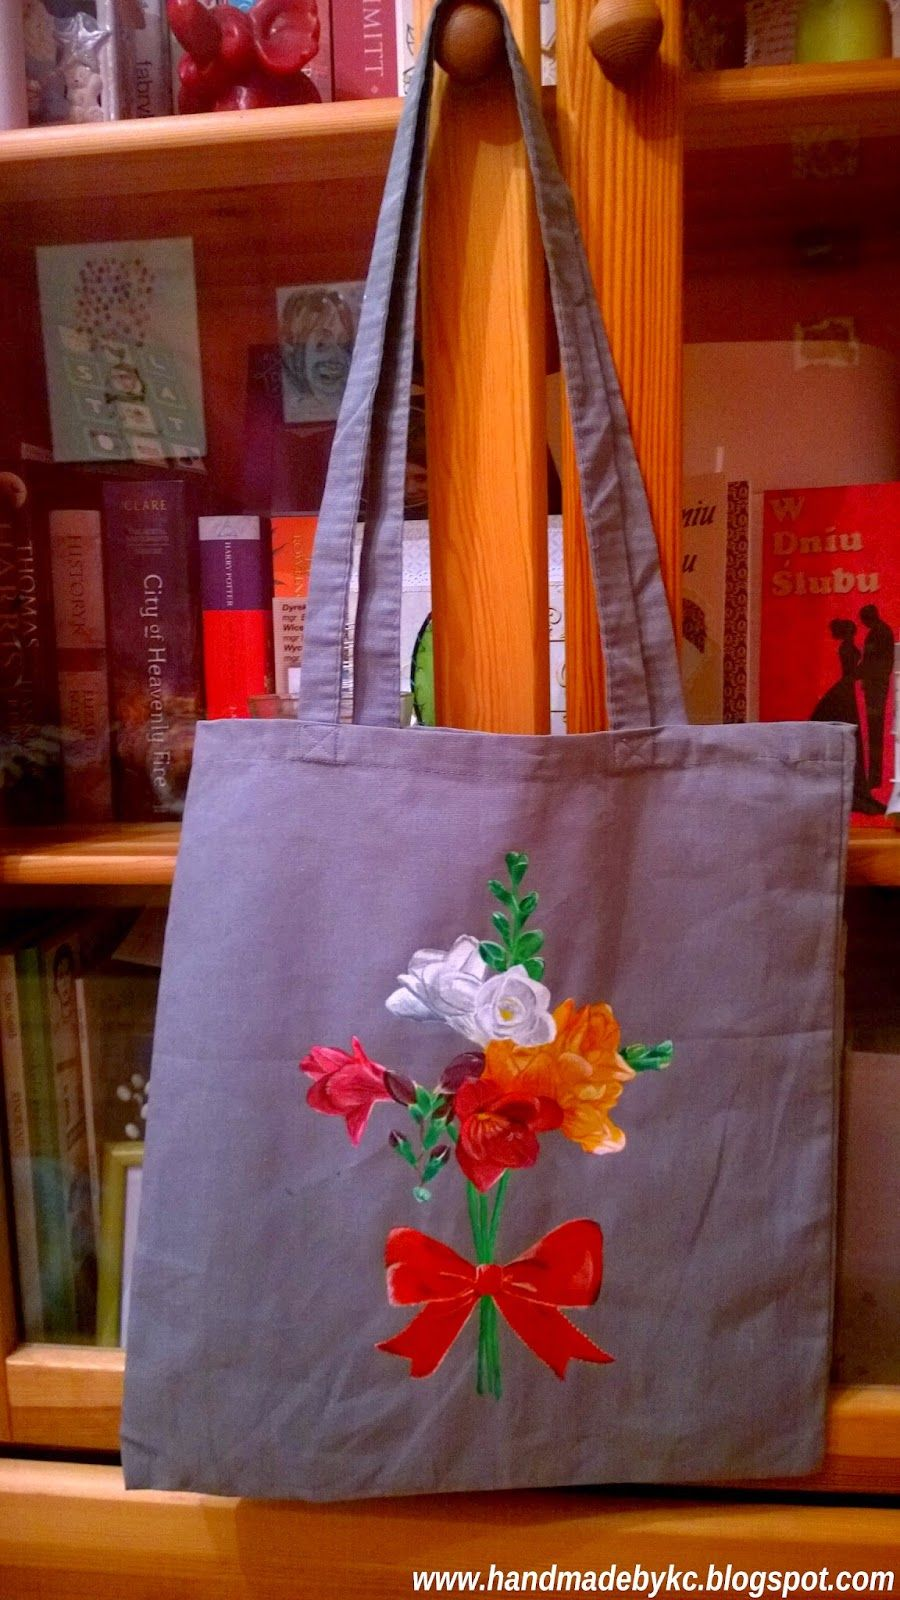 hand painted bag for shopping with flowers, enjoy! #handmade #diy #flowers #bag #shopping #fashion